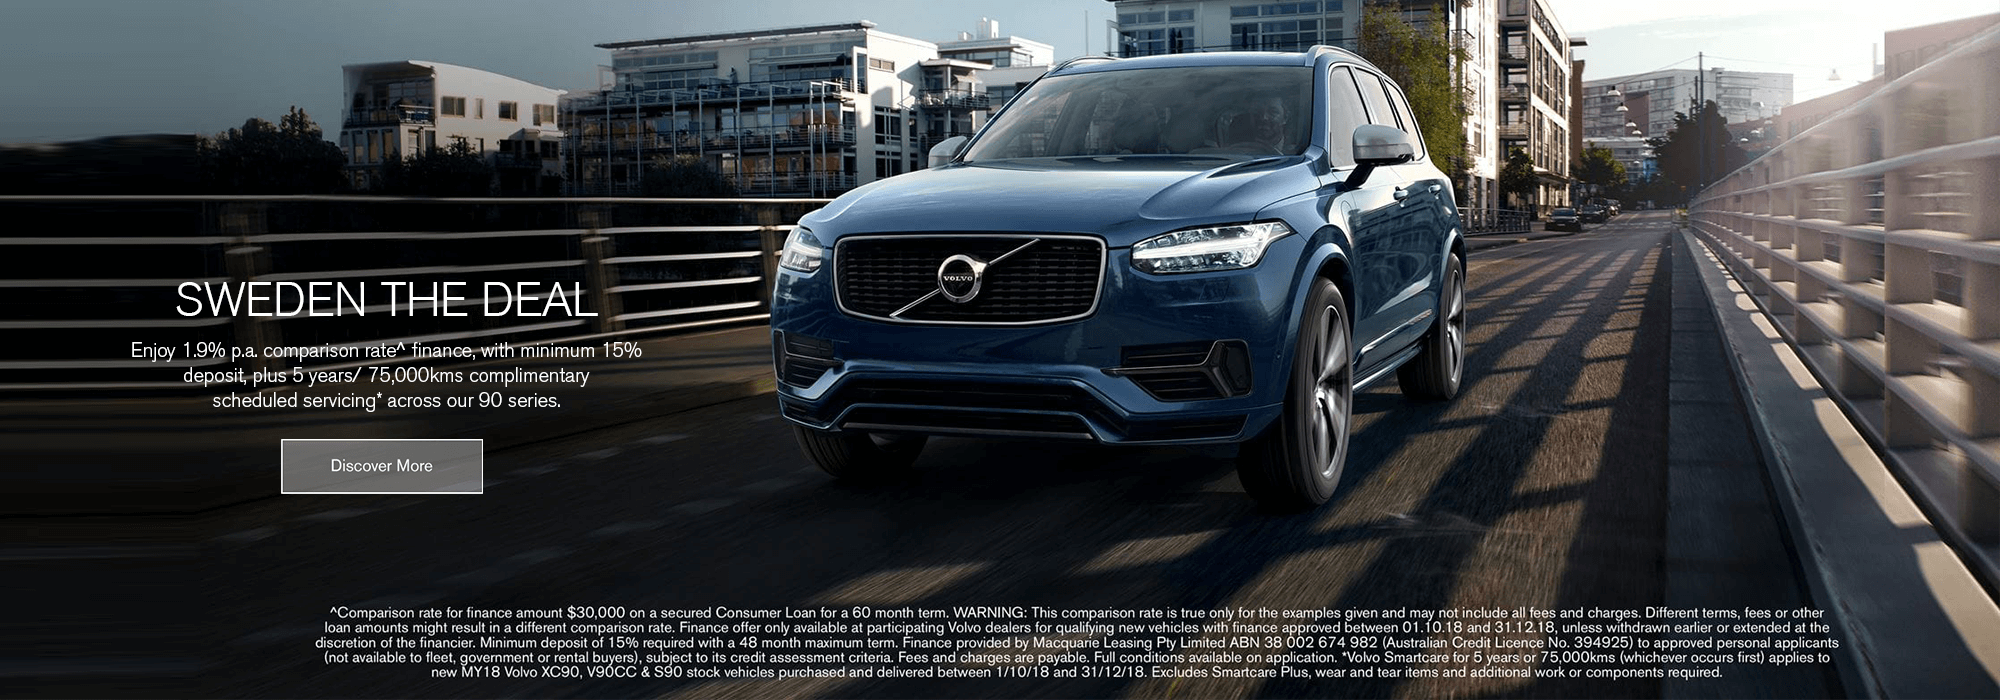 Visit your local Volvo dealer before September 30 to take advantage of 1.9% p.a. comparison rate^ finance with a 15% deposit across the entire Volvo 90 series, but do it before September 30. Offer on while stocks last.